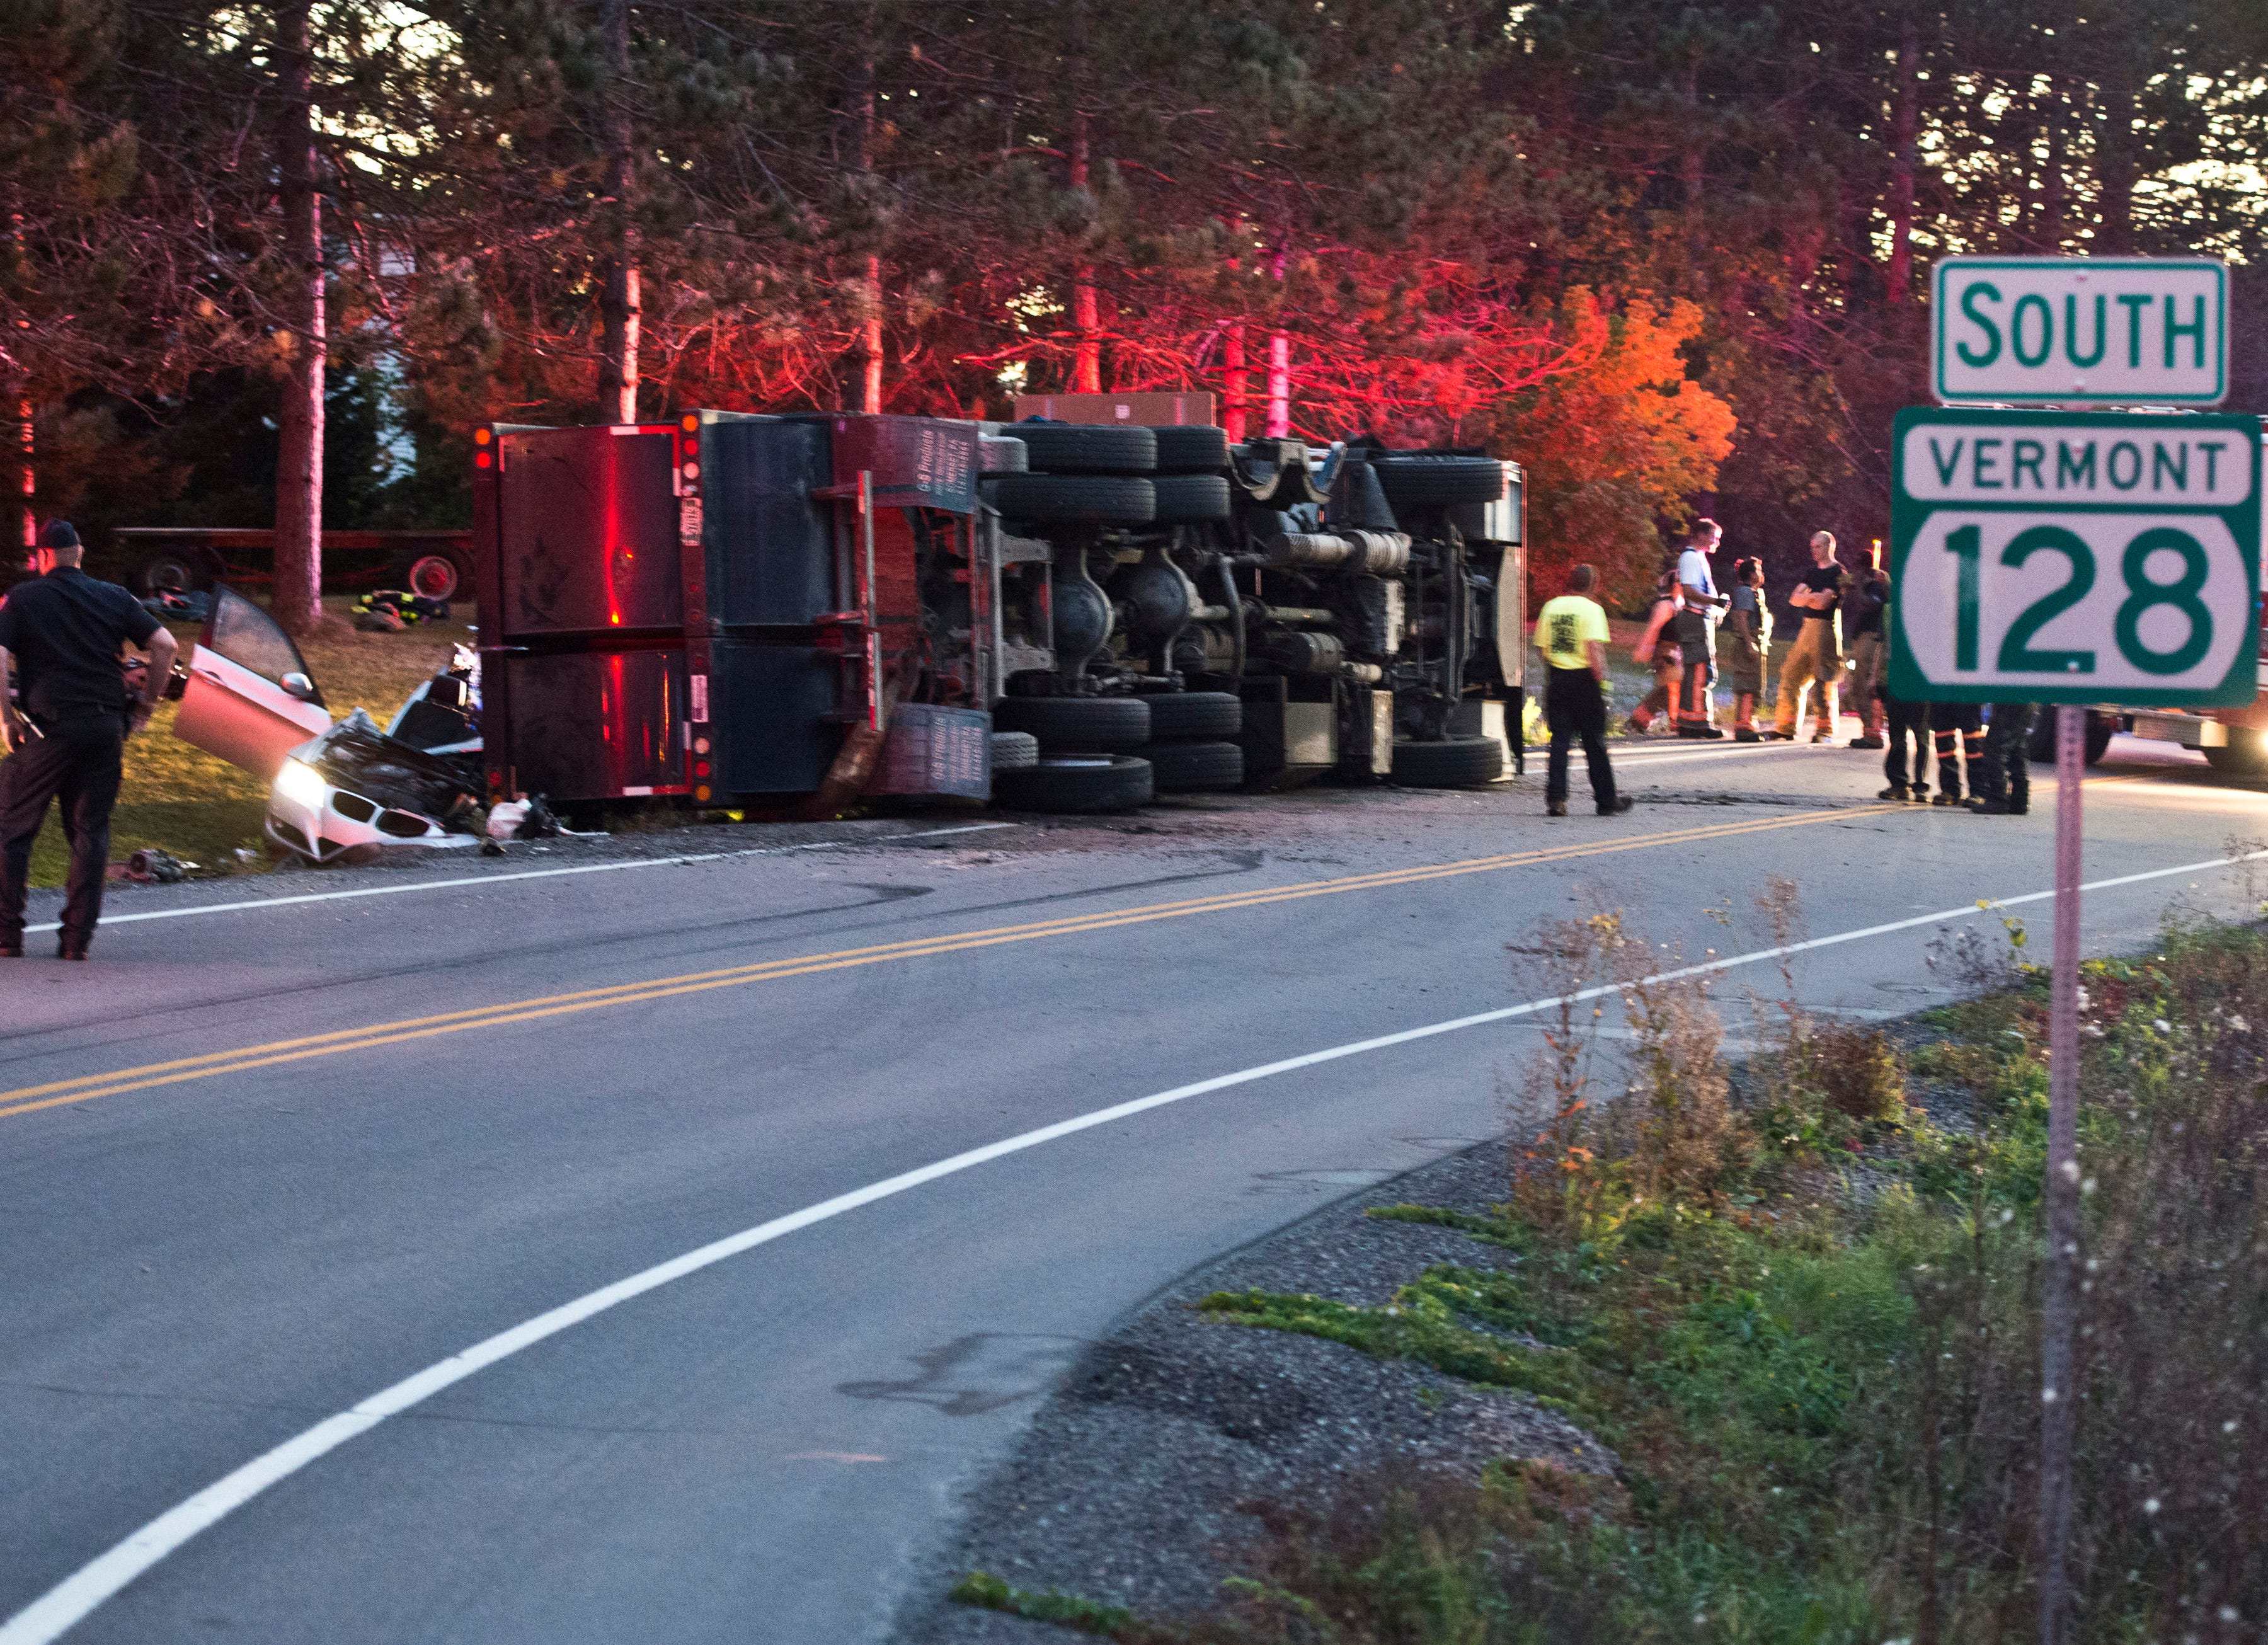 One injured in essex garbage truck crash for Vermont department of motor vehicles south burlington vt